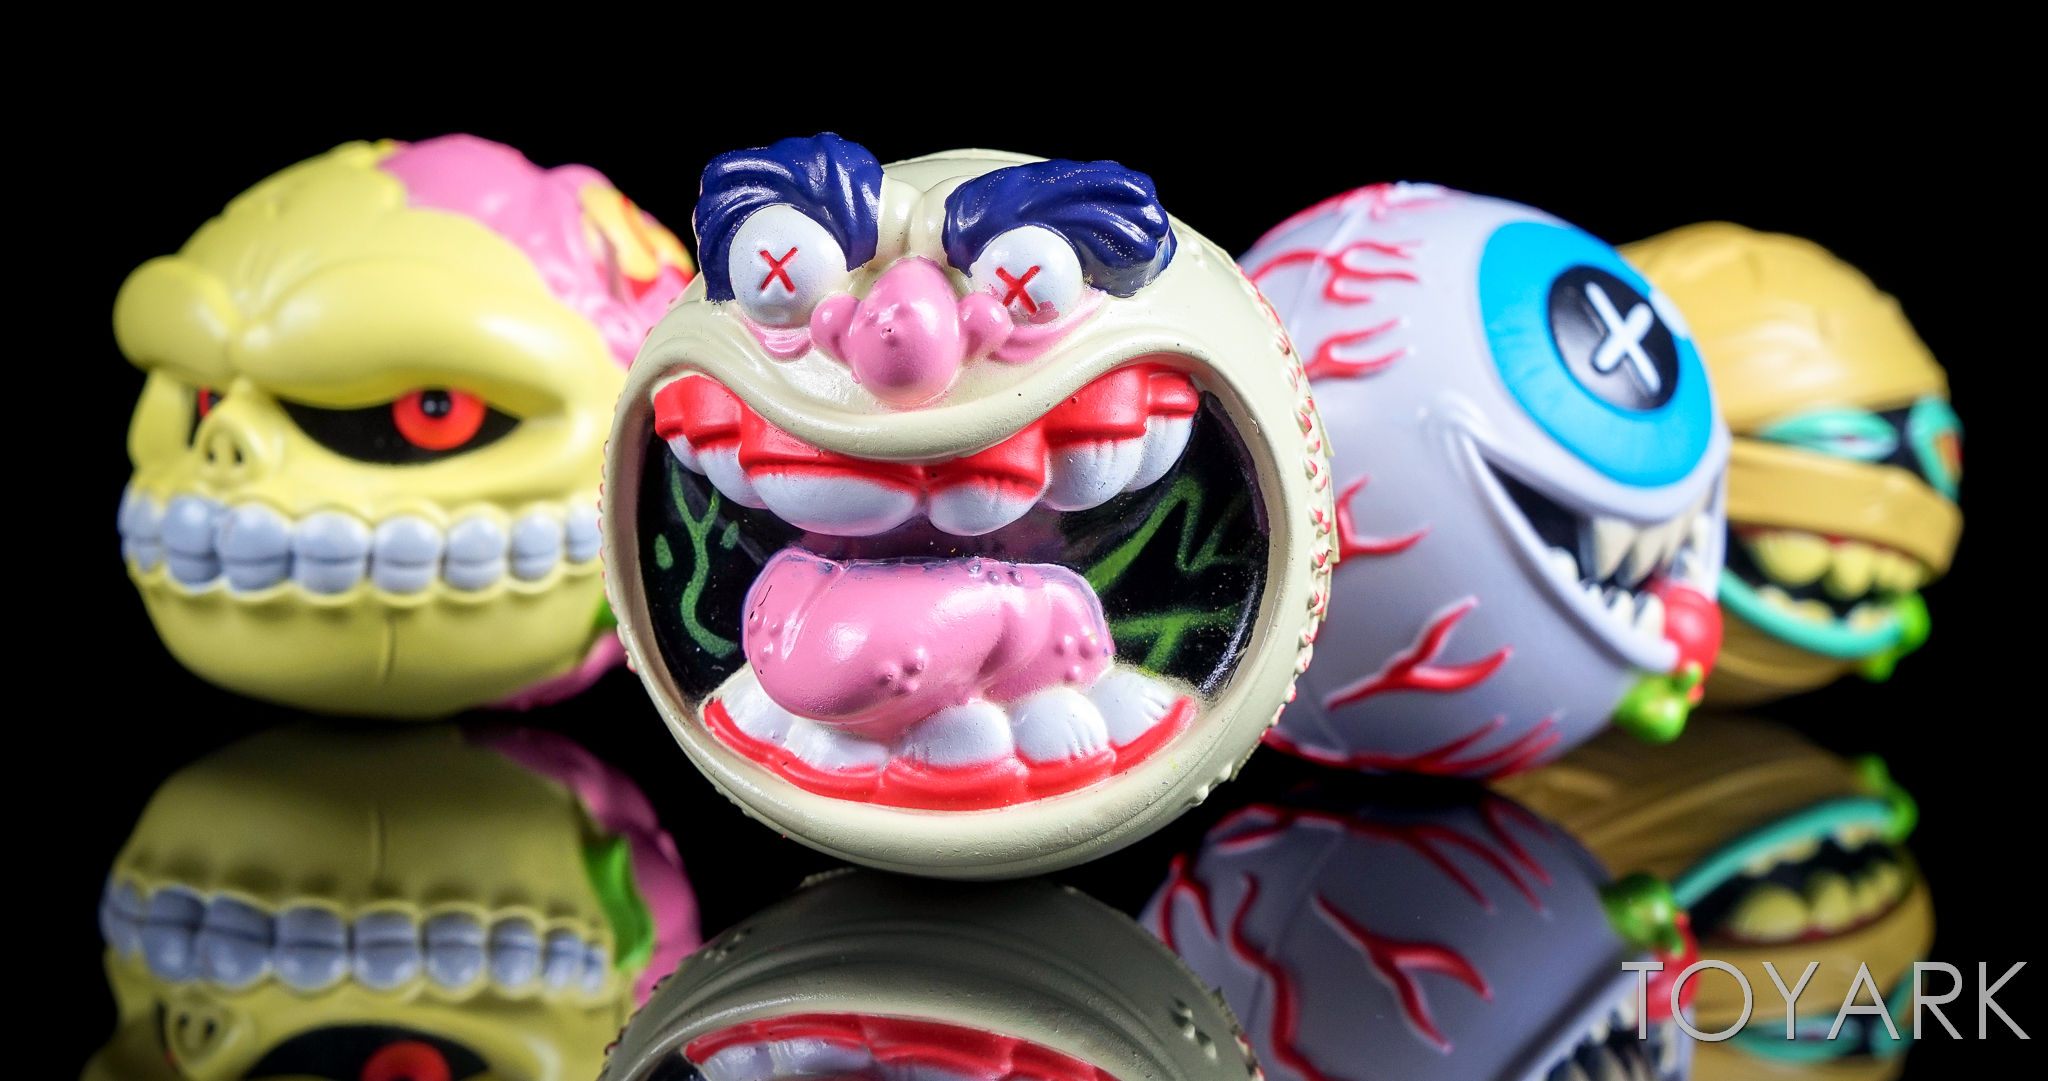 http://news.toyark.com/wp-content/uploads/sites/4/2017/01/Just-Play-Series-1-Madballs-038.jpg